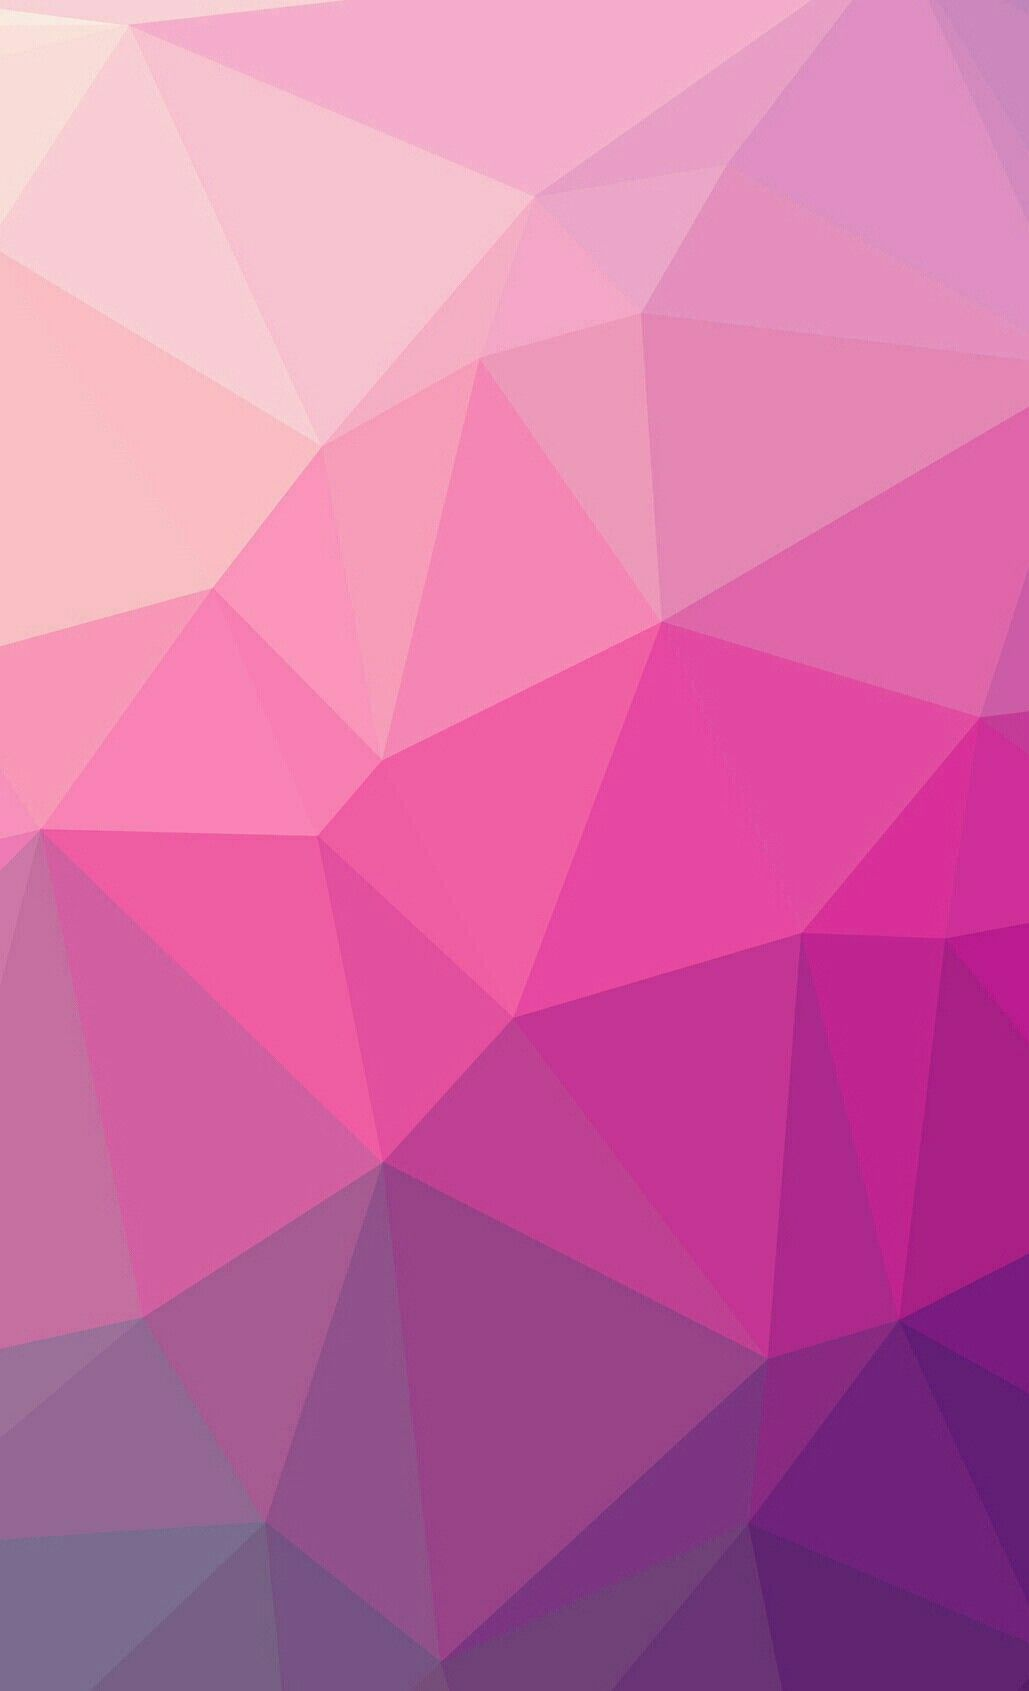 graphic design patterns - gradient patterns